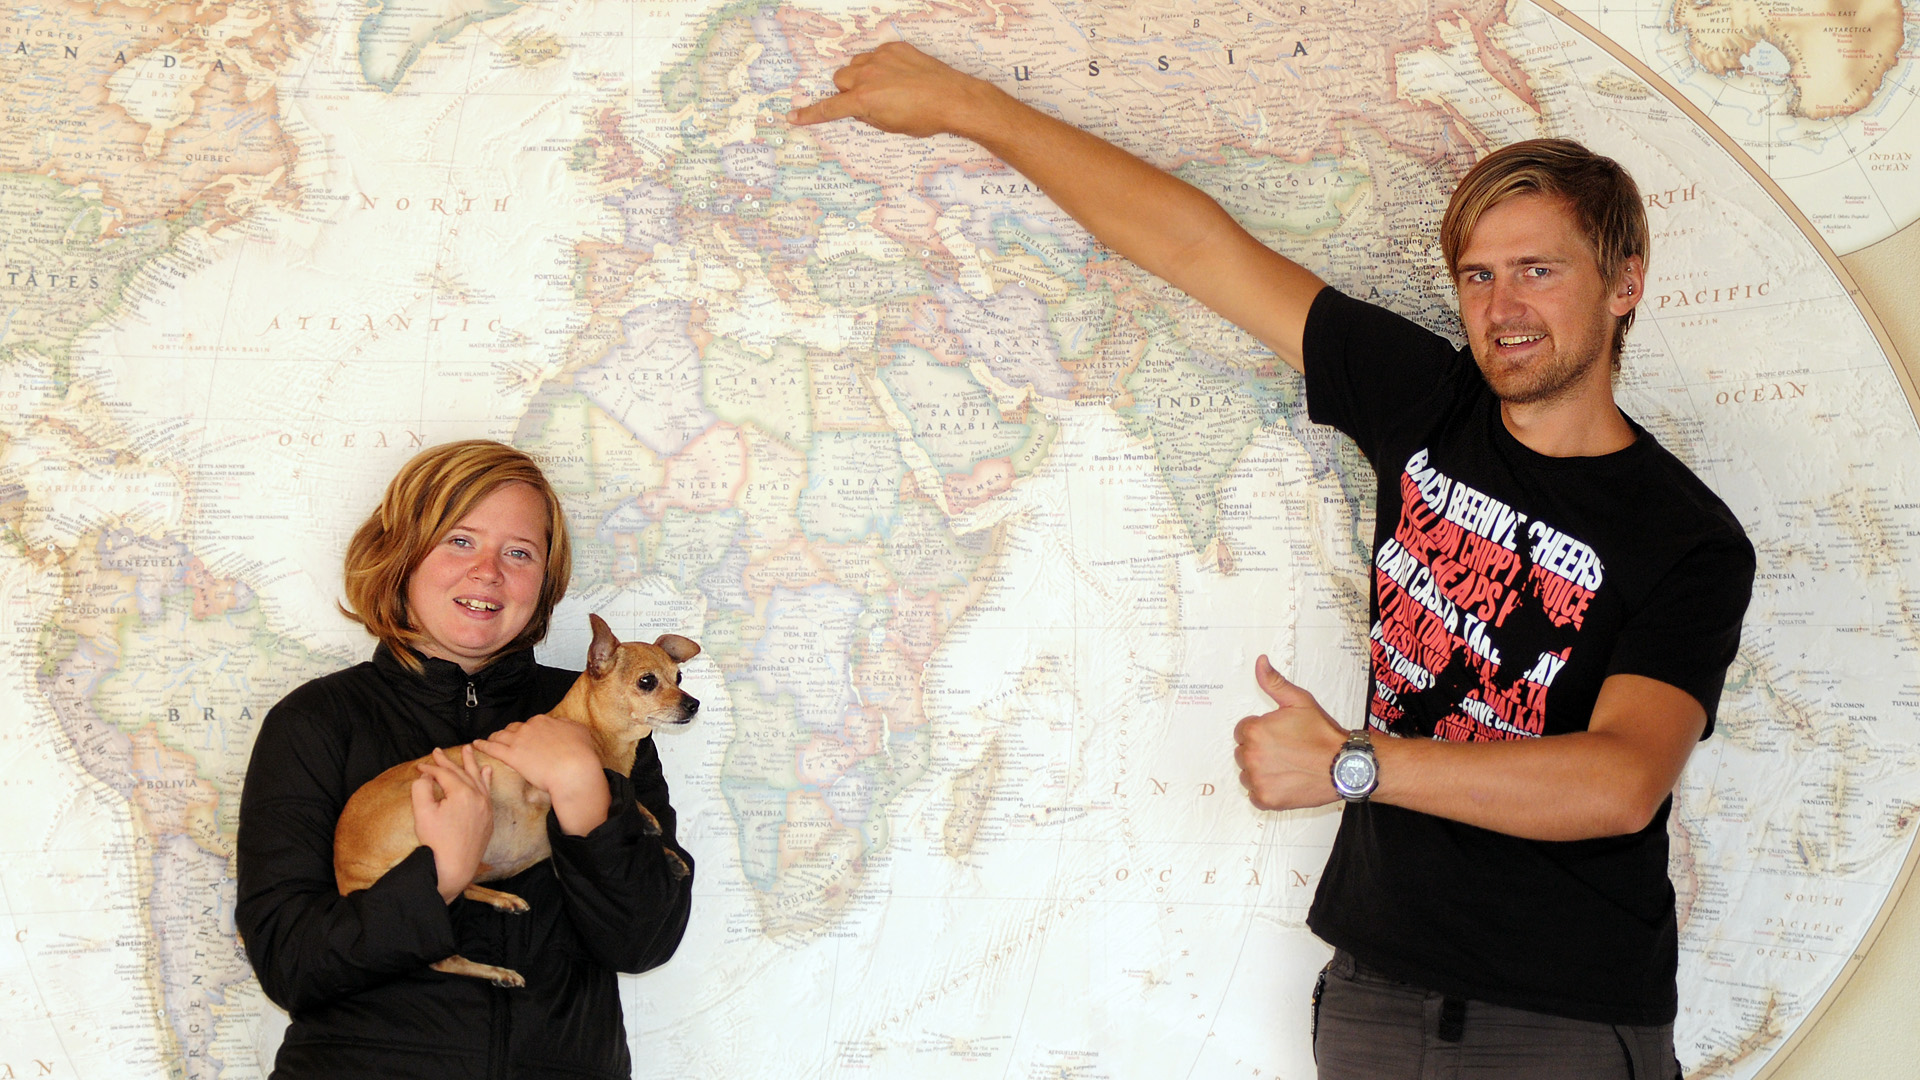 Vineta, Tiki & Krisjanis in front of a large world map. Vineta is holding Tiki and Krisjanis is pointing to Riga, Latvia on the world map